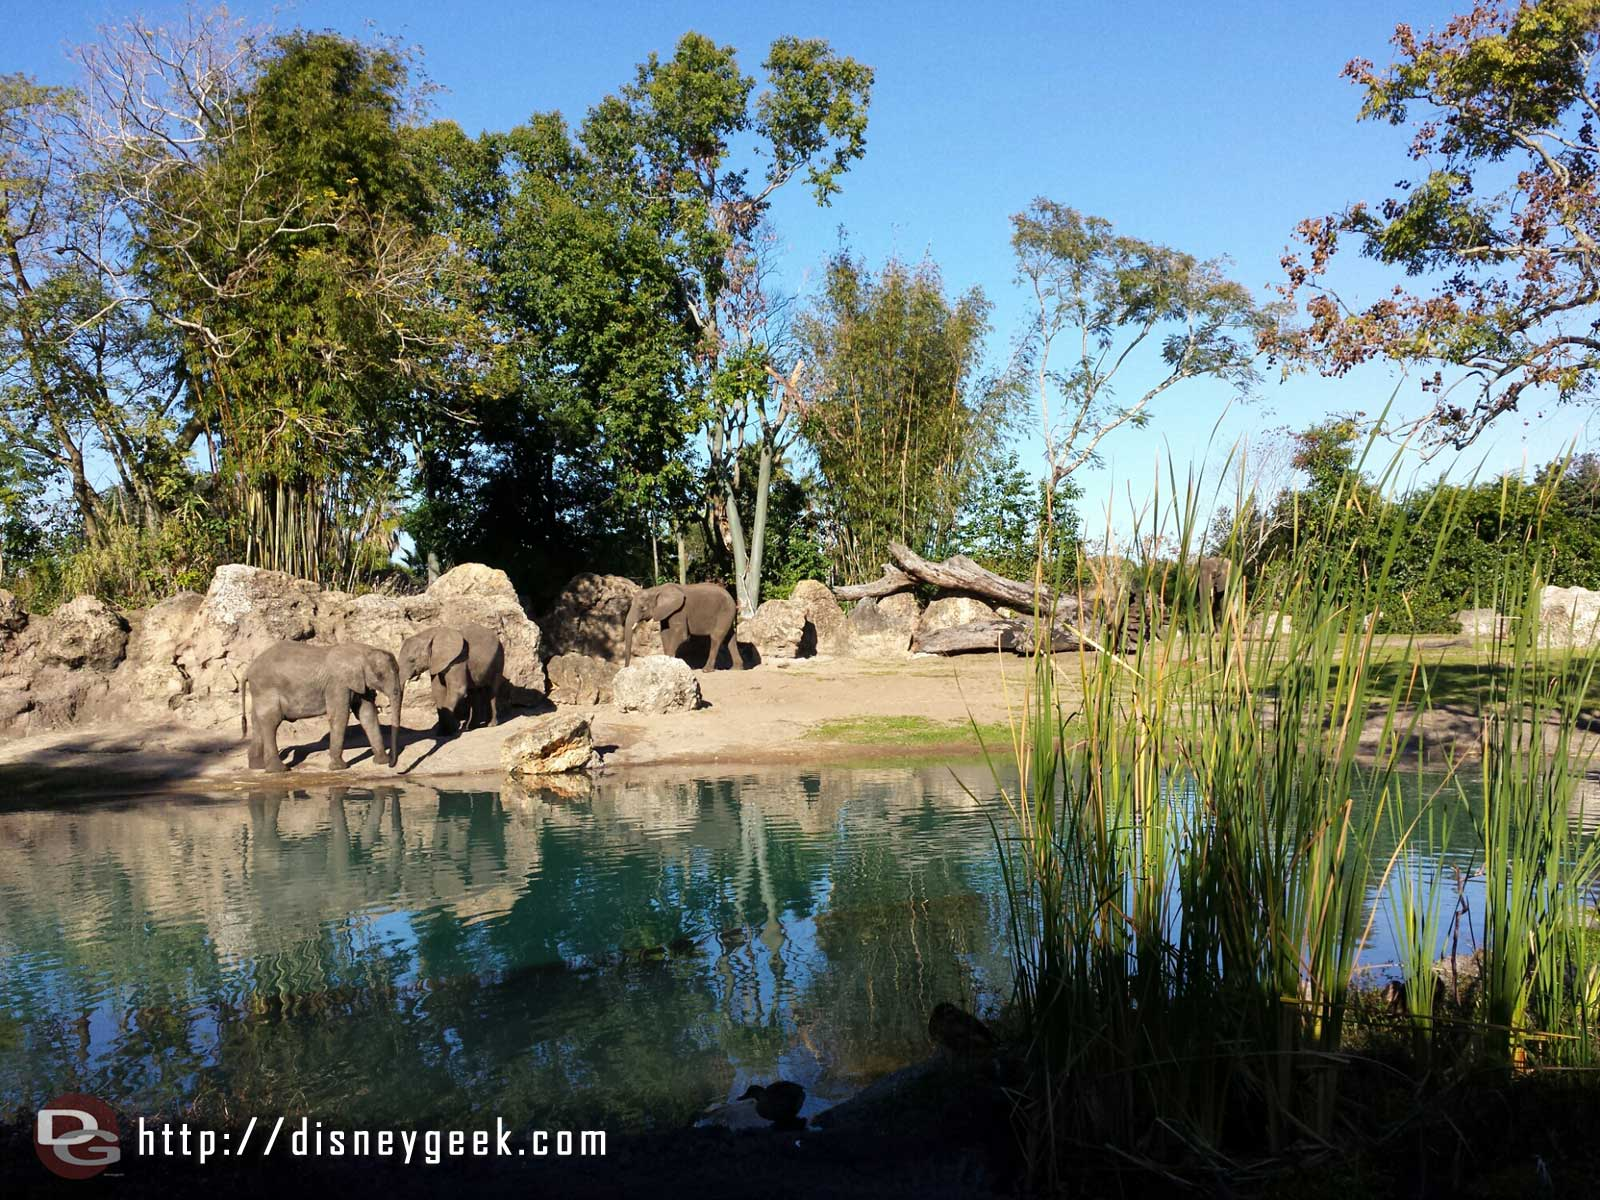 Kilimanjaro Safari – elephants – #WDW Disney's Animal Kingdom